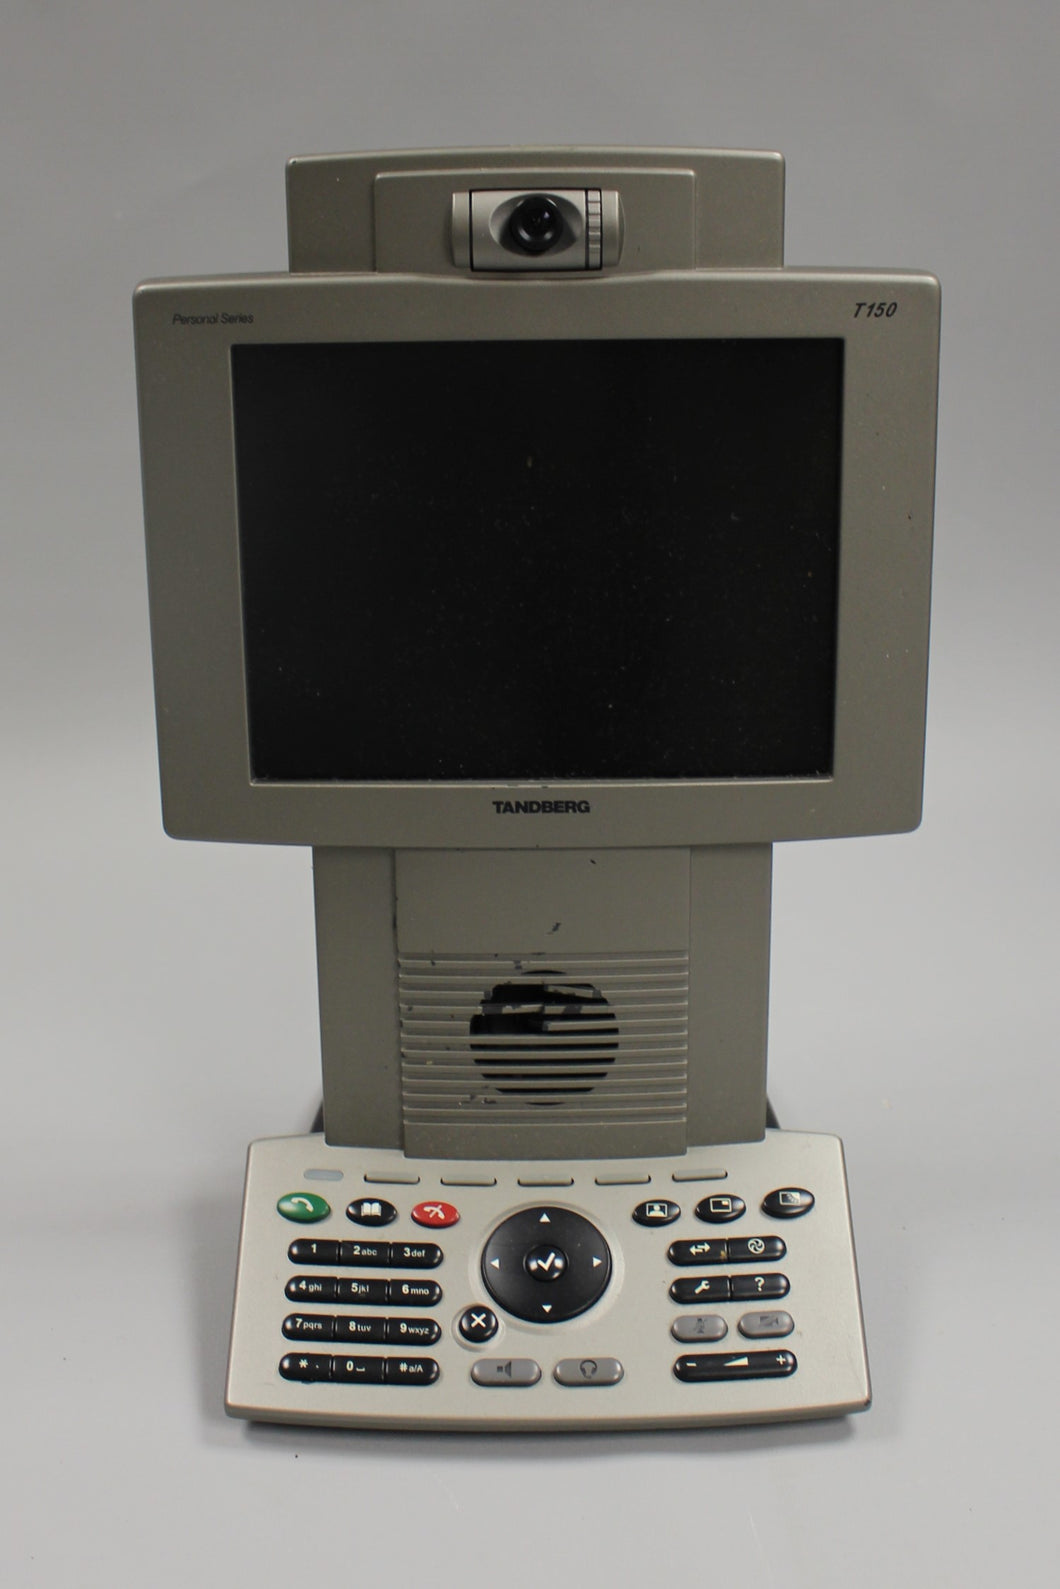 CSDVRS Video Conference Phone Personal Series - T150 - Used - #2